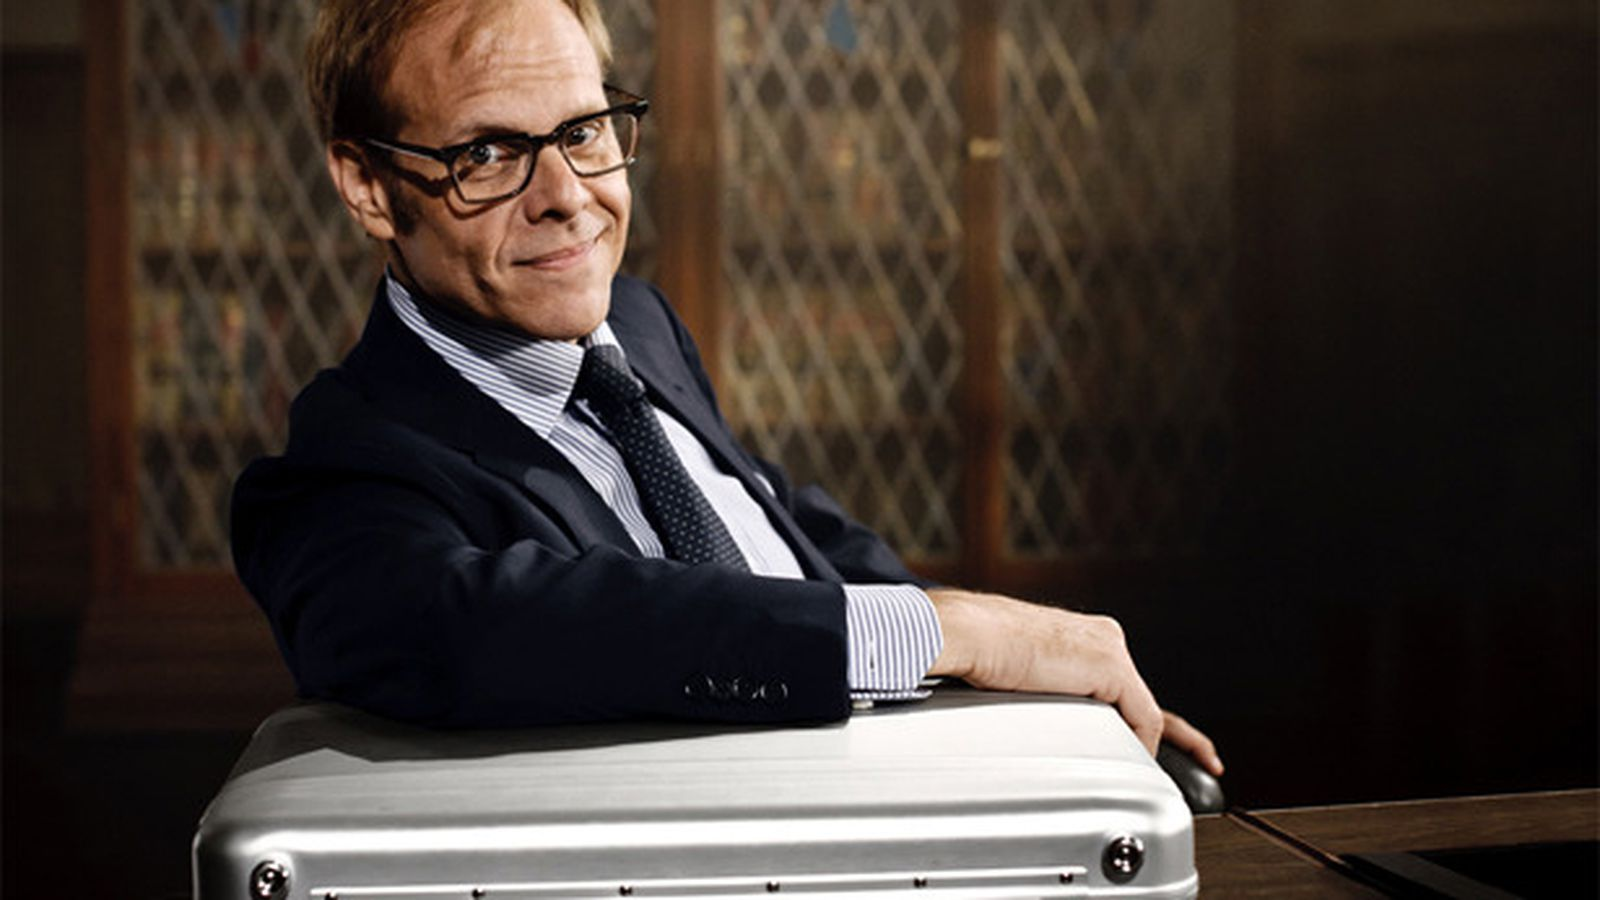 Alton Brown on His Tour, Food TV, & Culinary School